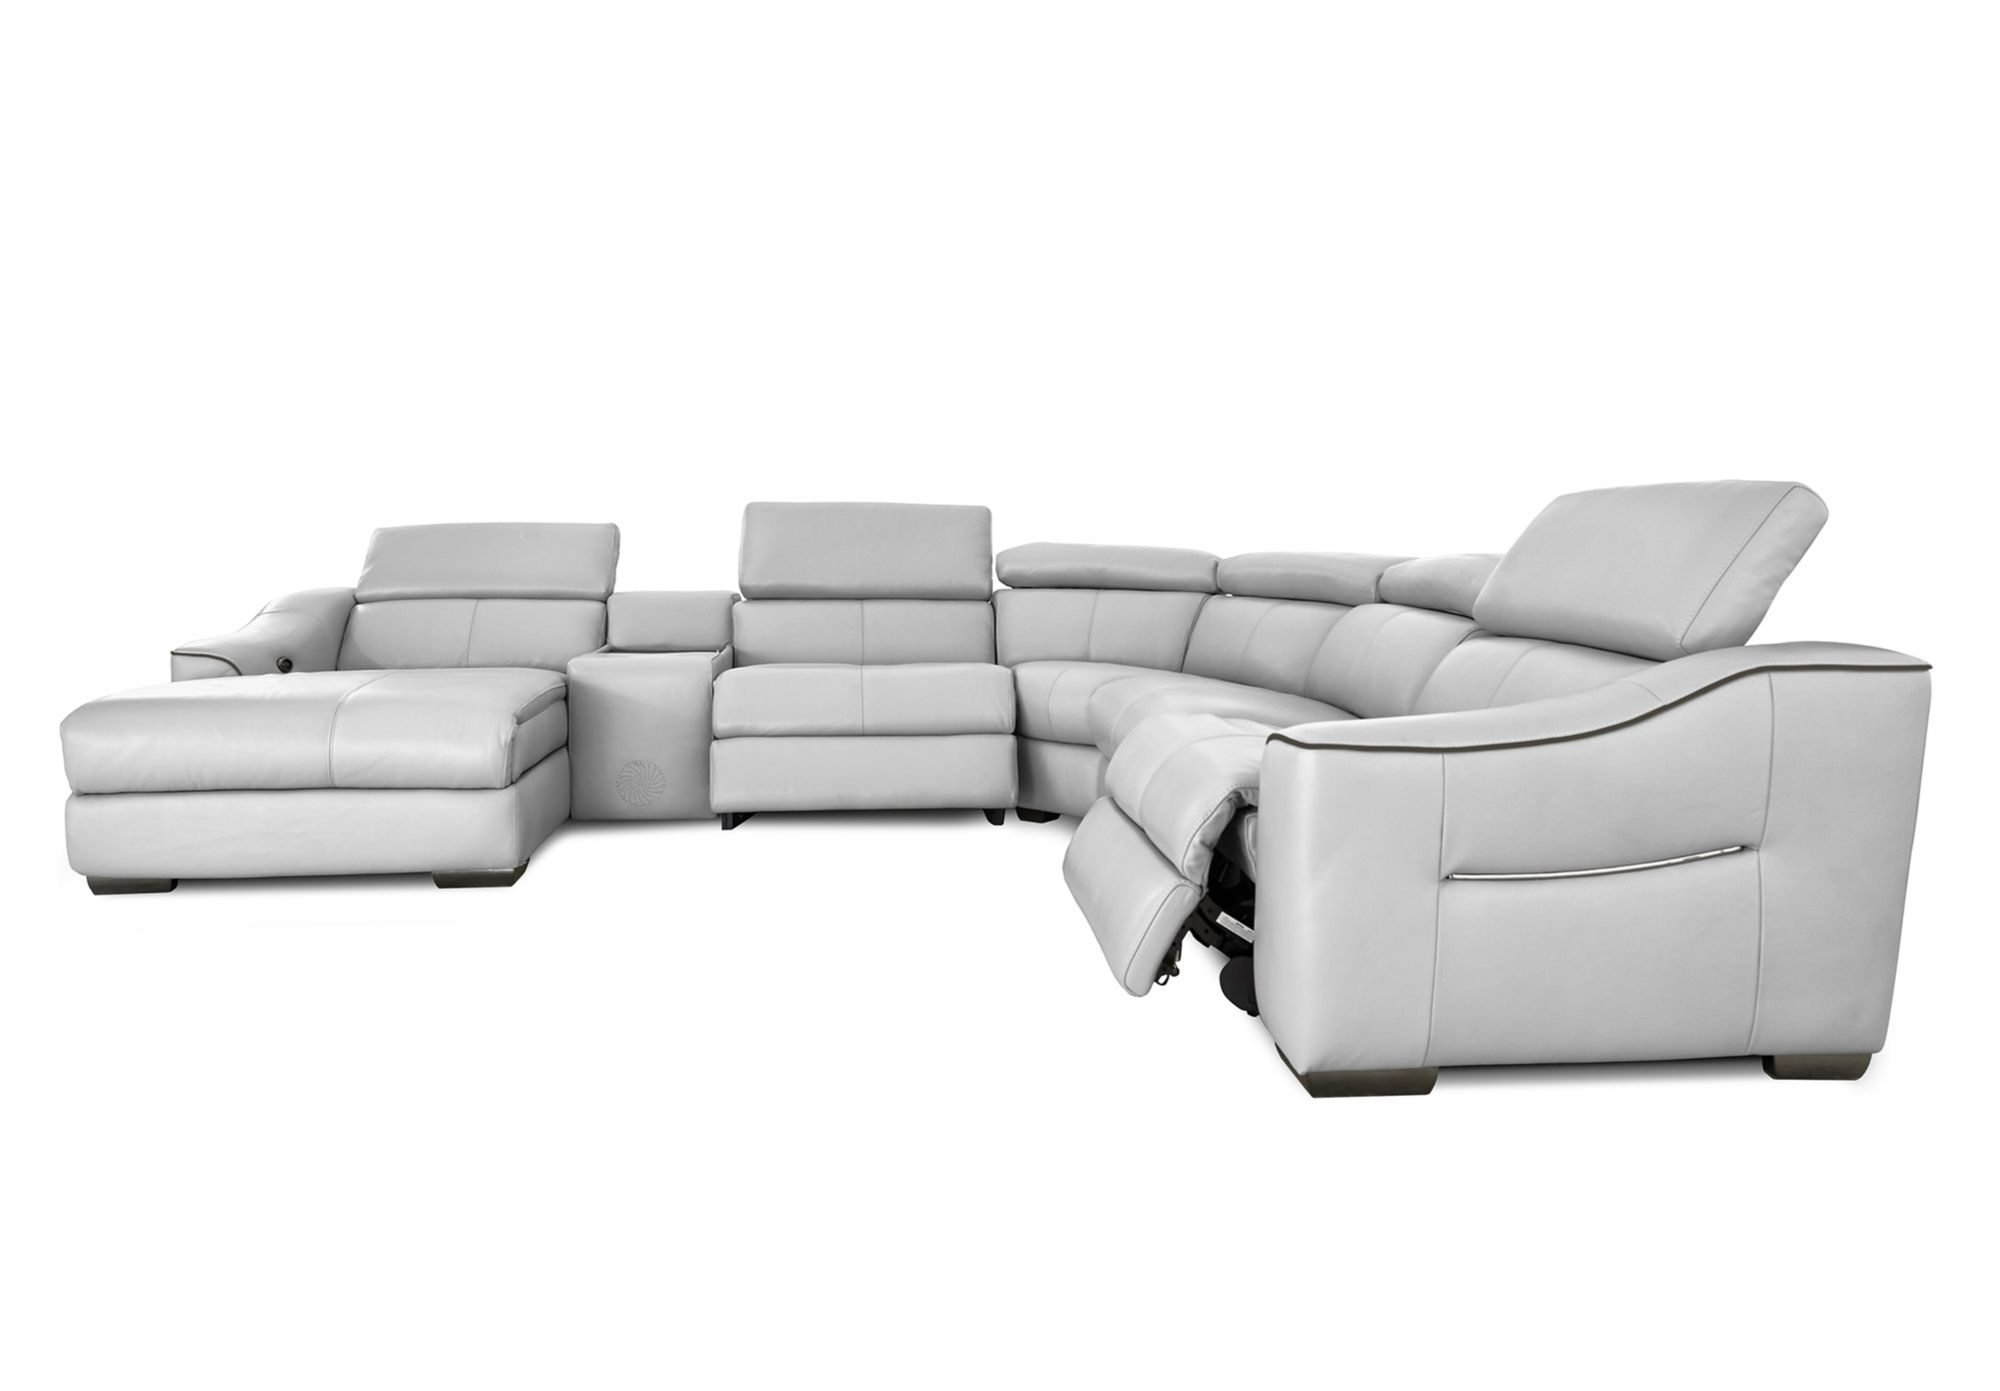 Chaise Sofa Chairs Throughout Fashionable Rhf Corner Chaise Sofa – Elixir – Gorgeous Living Room Furniture (View 8 of 20)